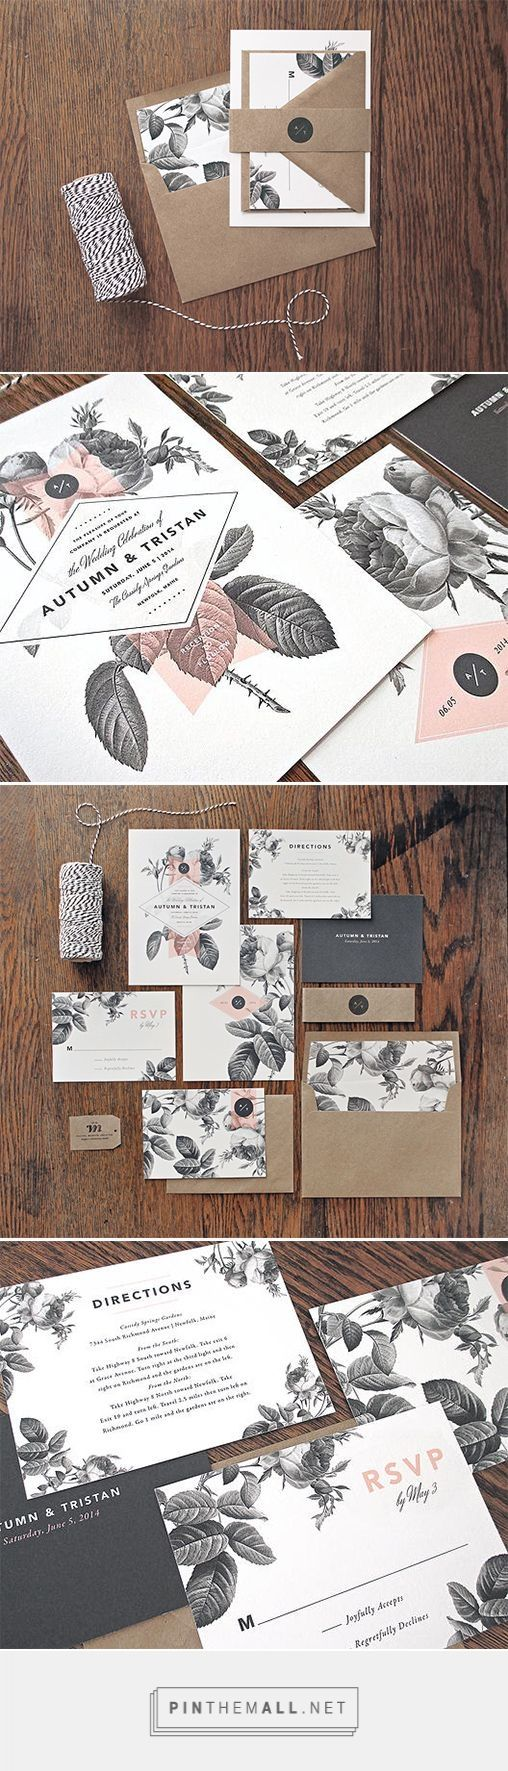 Floral Wedding Invitations | Fivestar Branding – Design and Branding Agency & Inspiration Gallery